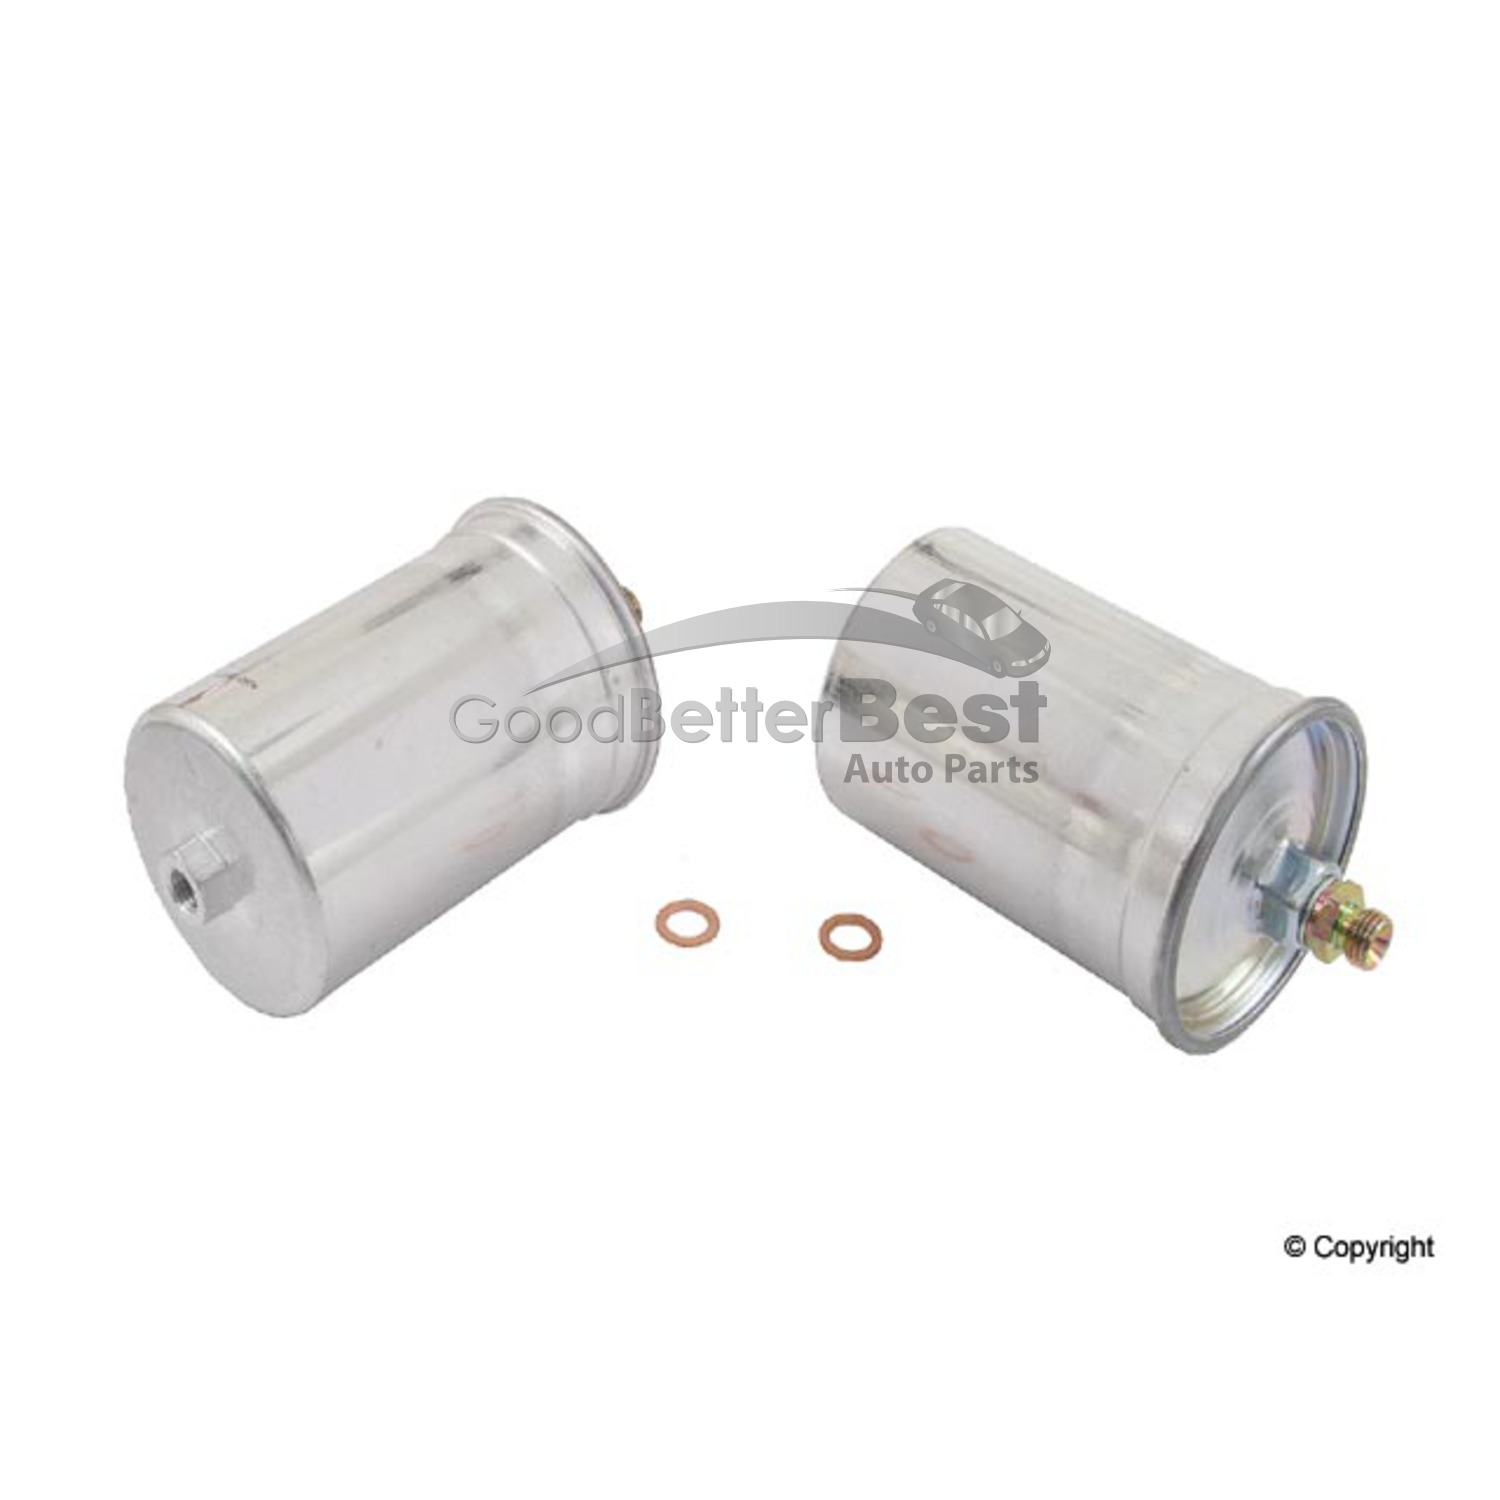 One New OPparts Fuel Filter ALG2027 0014778701 for Mercedes MB